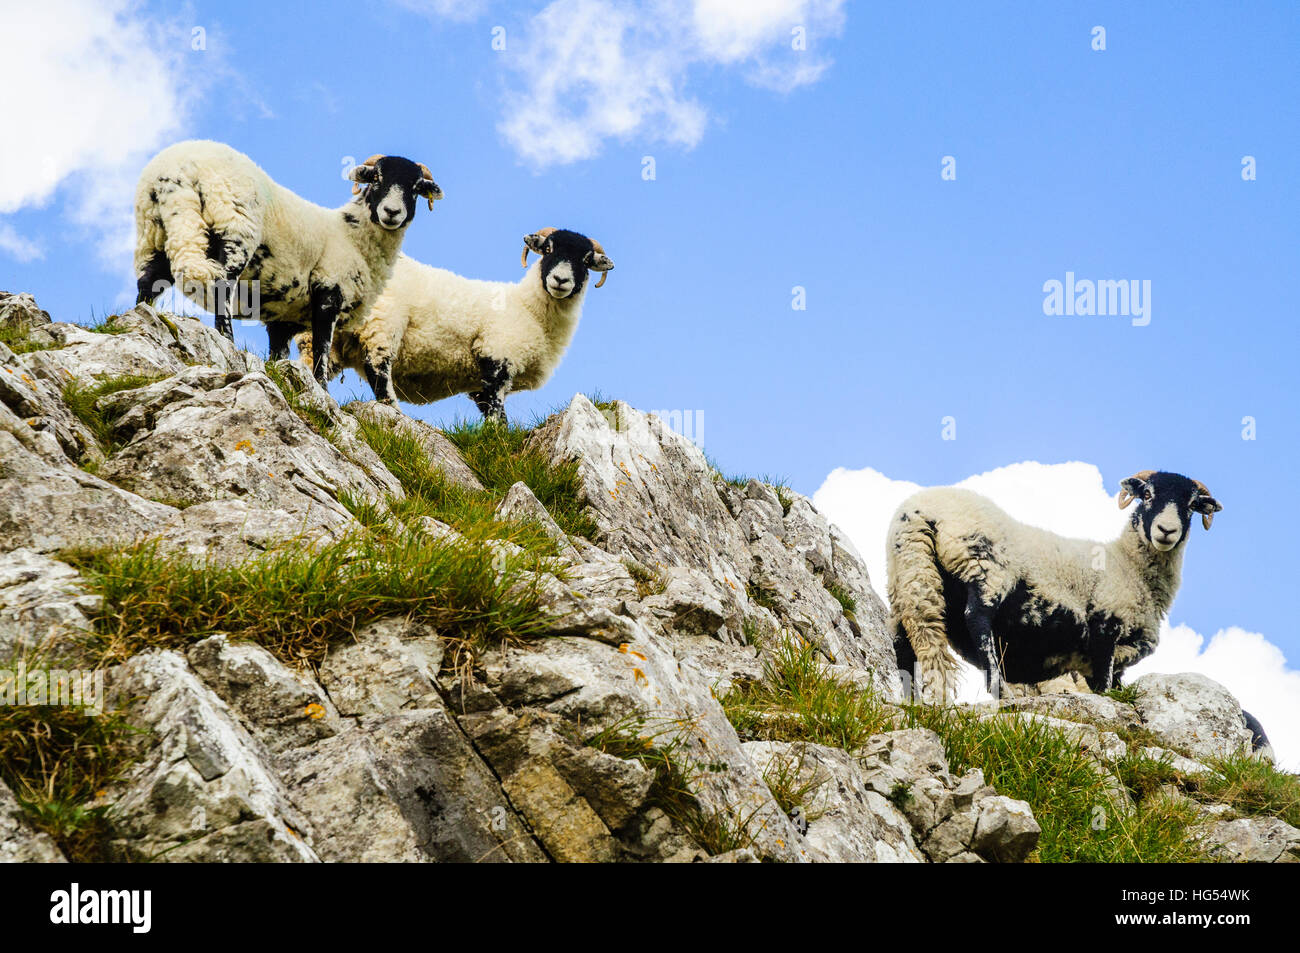 Sheep on outcrop near Attermire Scar above Settle in the Yorkshire Dales National Park England - Stock Image